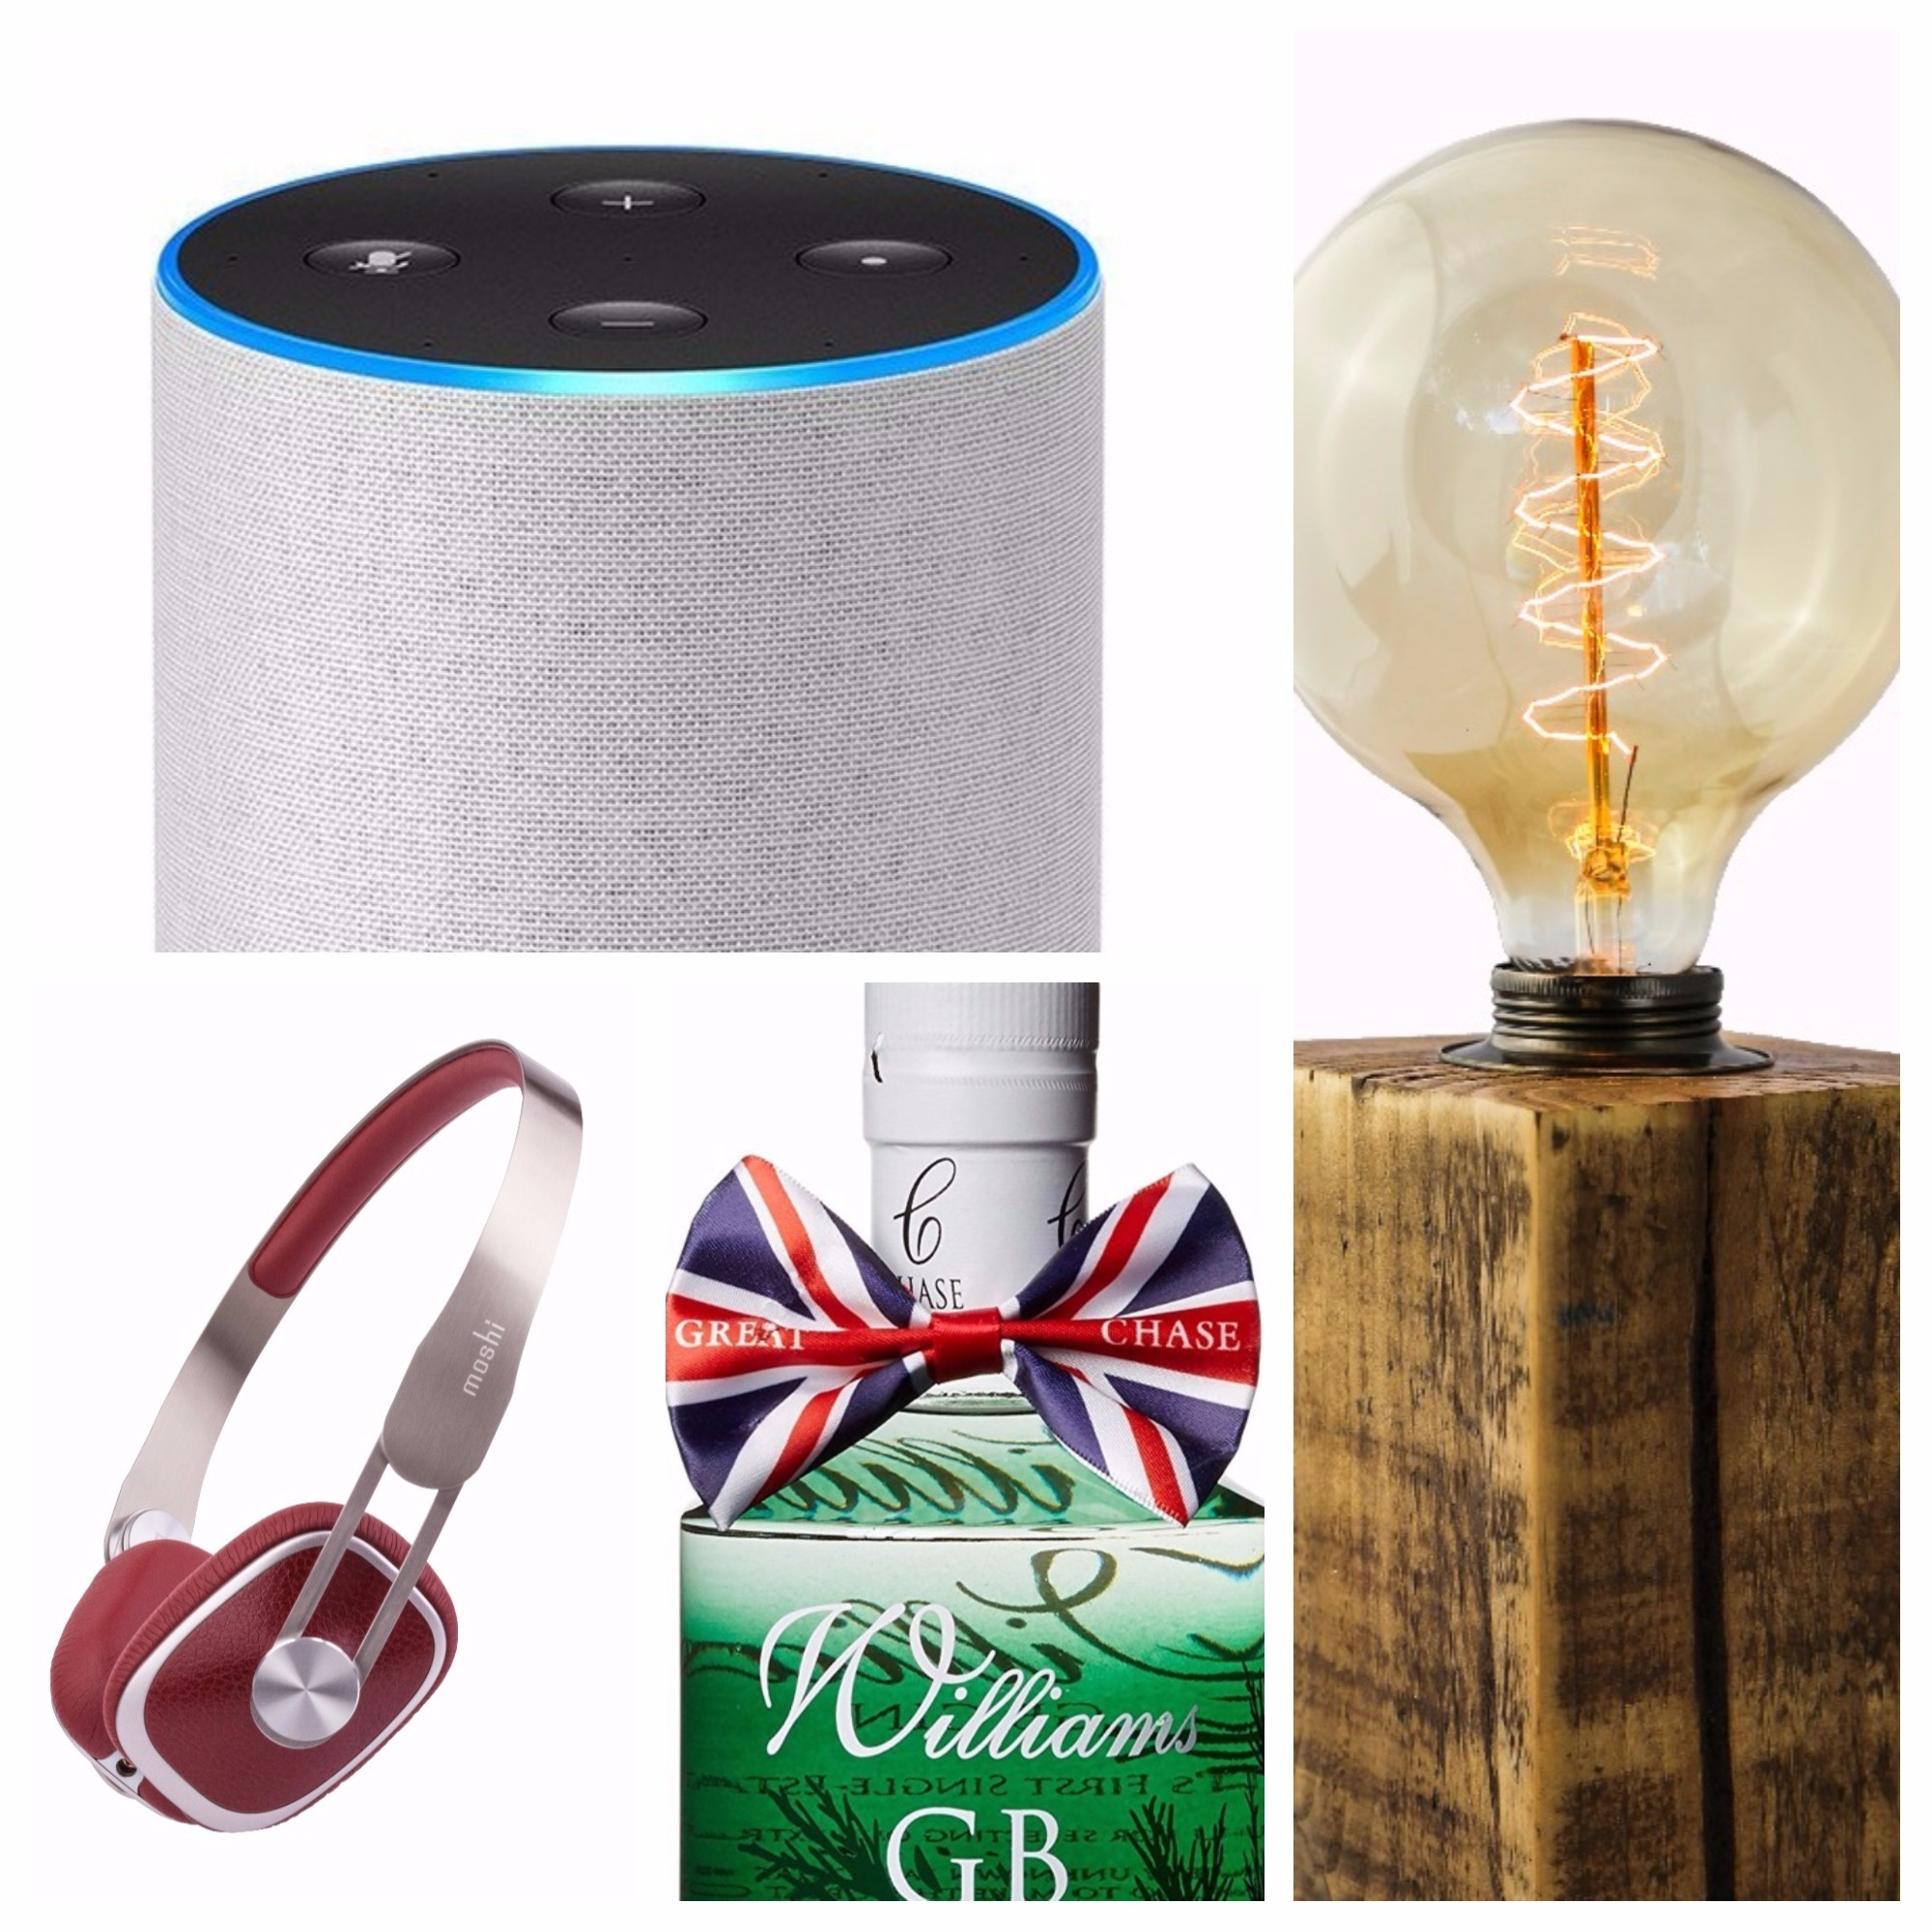 See our list of 10 gift ideas for men this Christmas